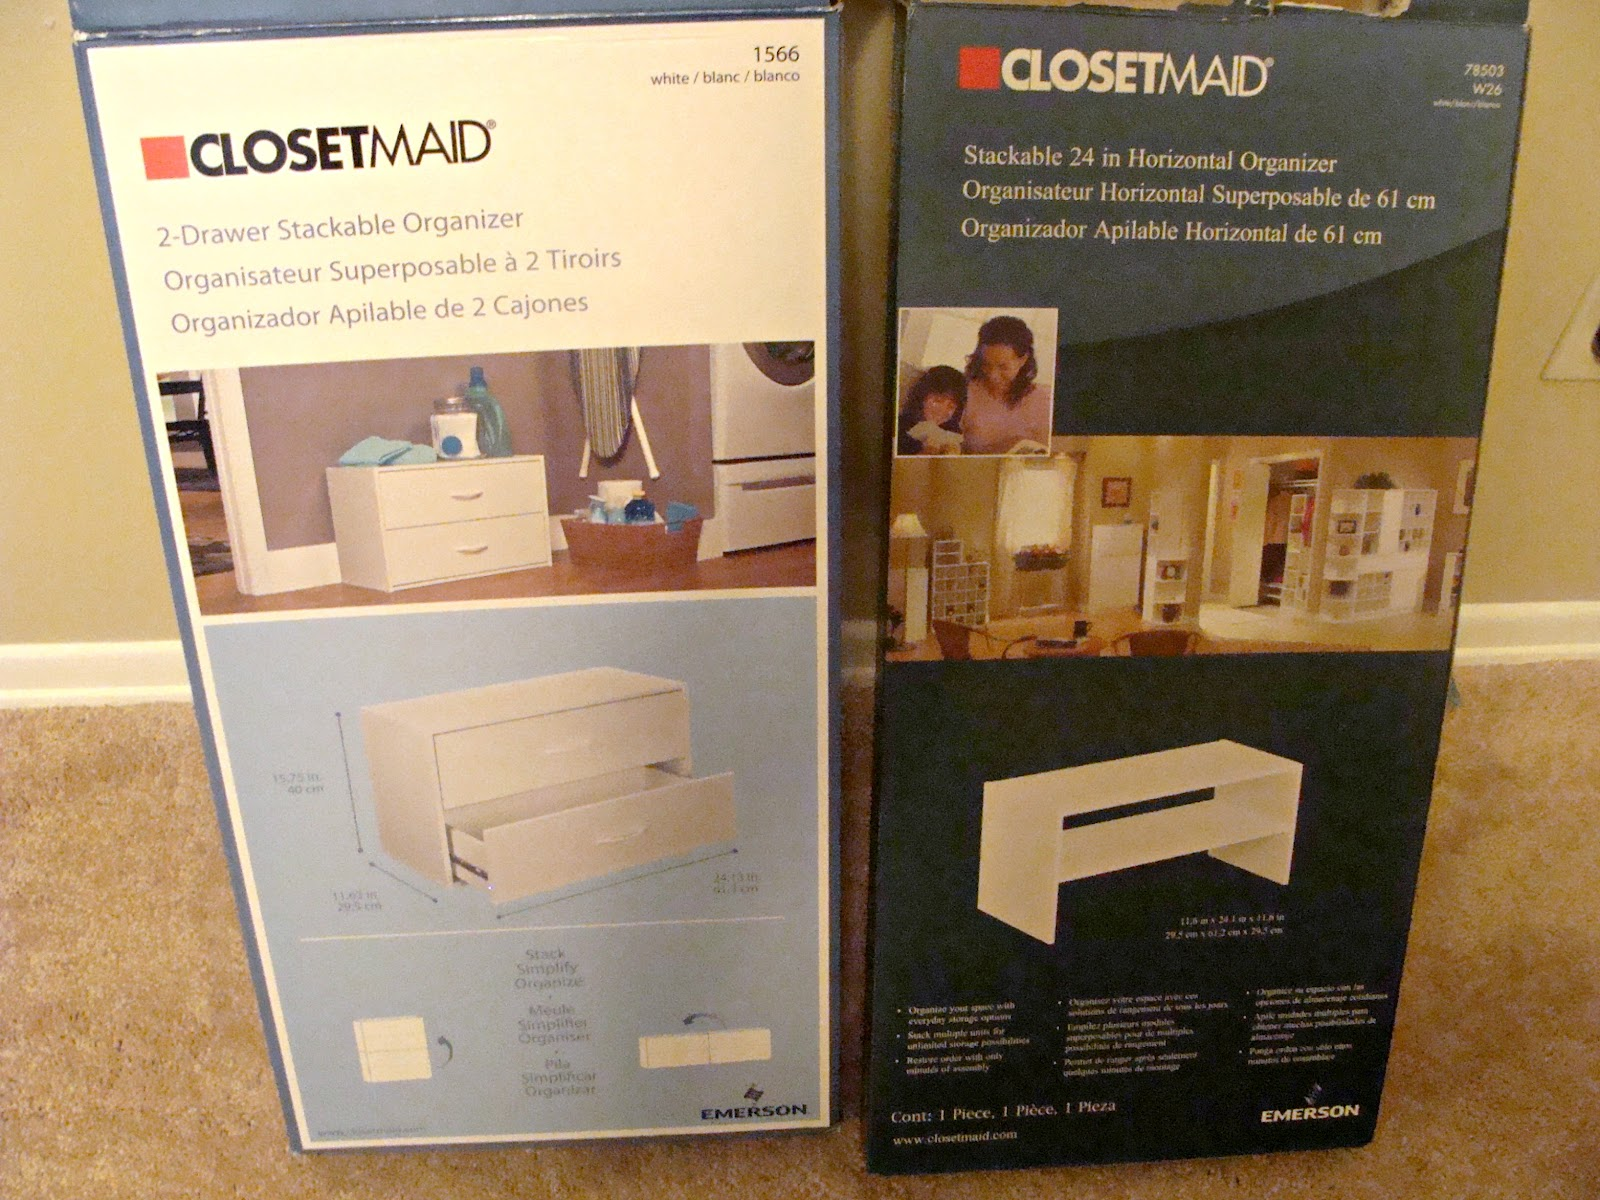 I Looked All Around And Finally Settled On These ClosetMaid Organizers From  Lowes. I Believe I Paid $10 For The Shelf And $35 For The Drawers.